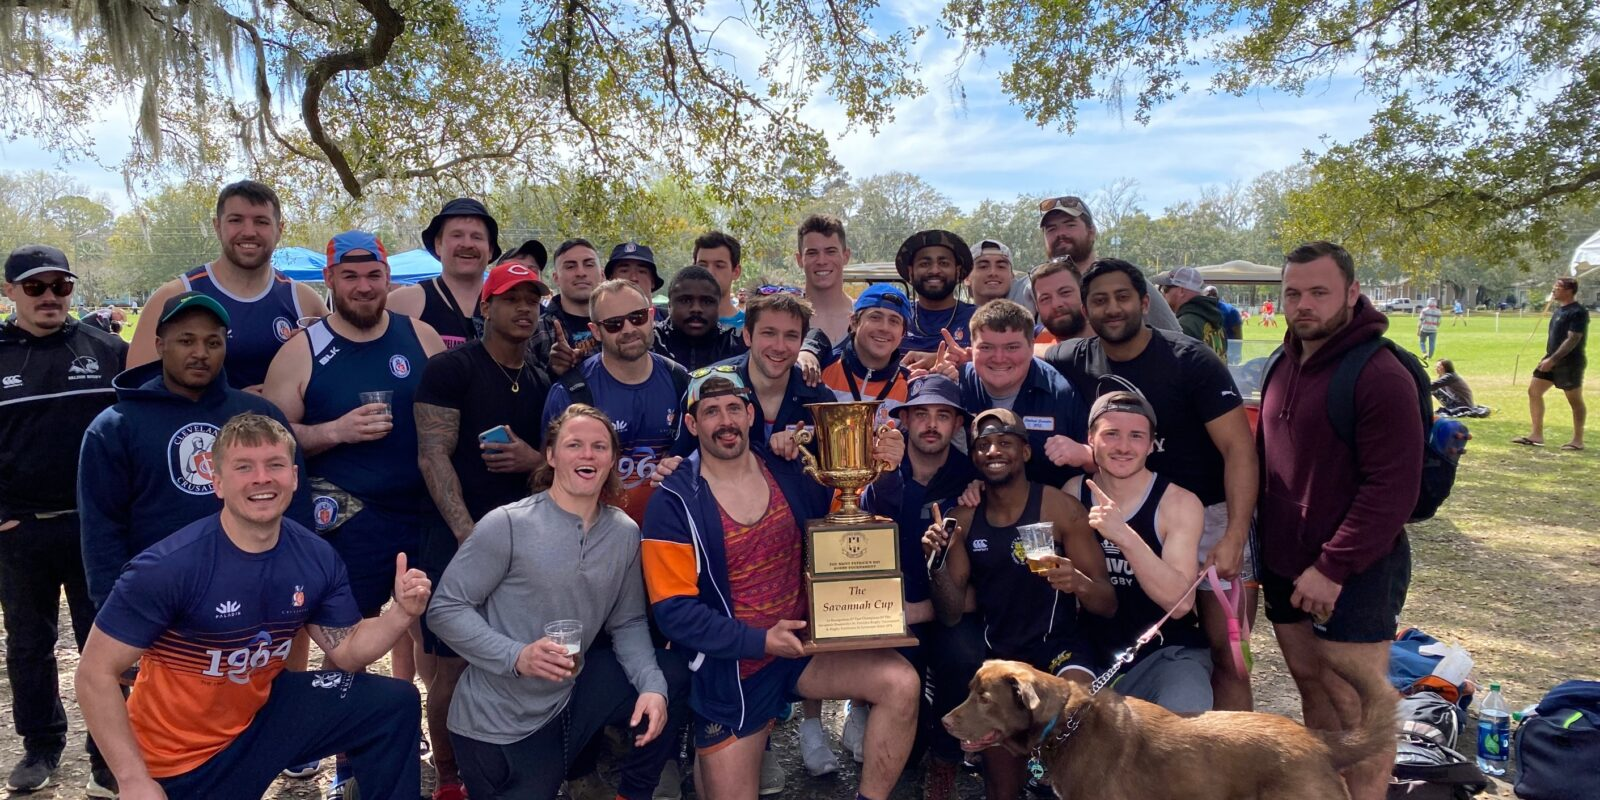 Cleveland rocks St. Patrick's Day Rugby tourney in Savannah